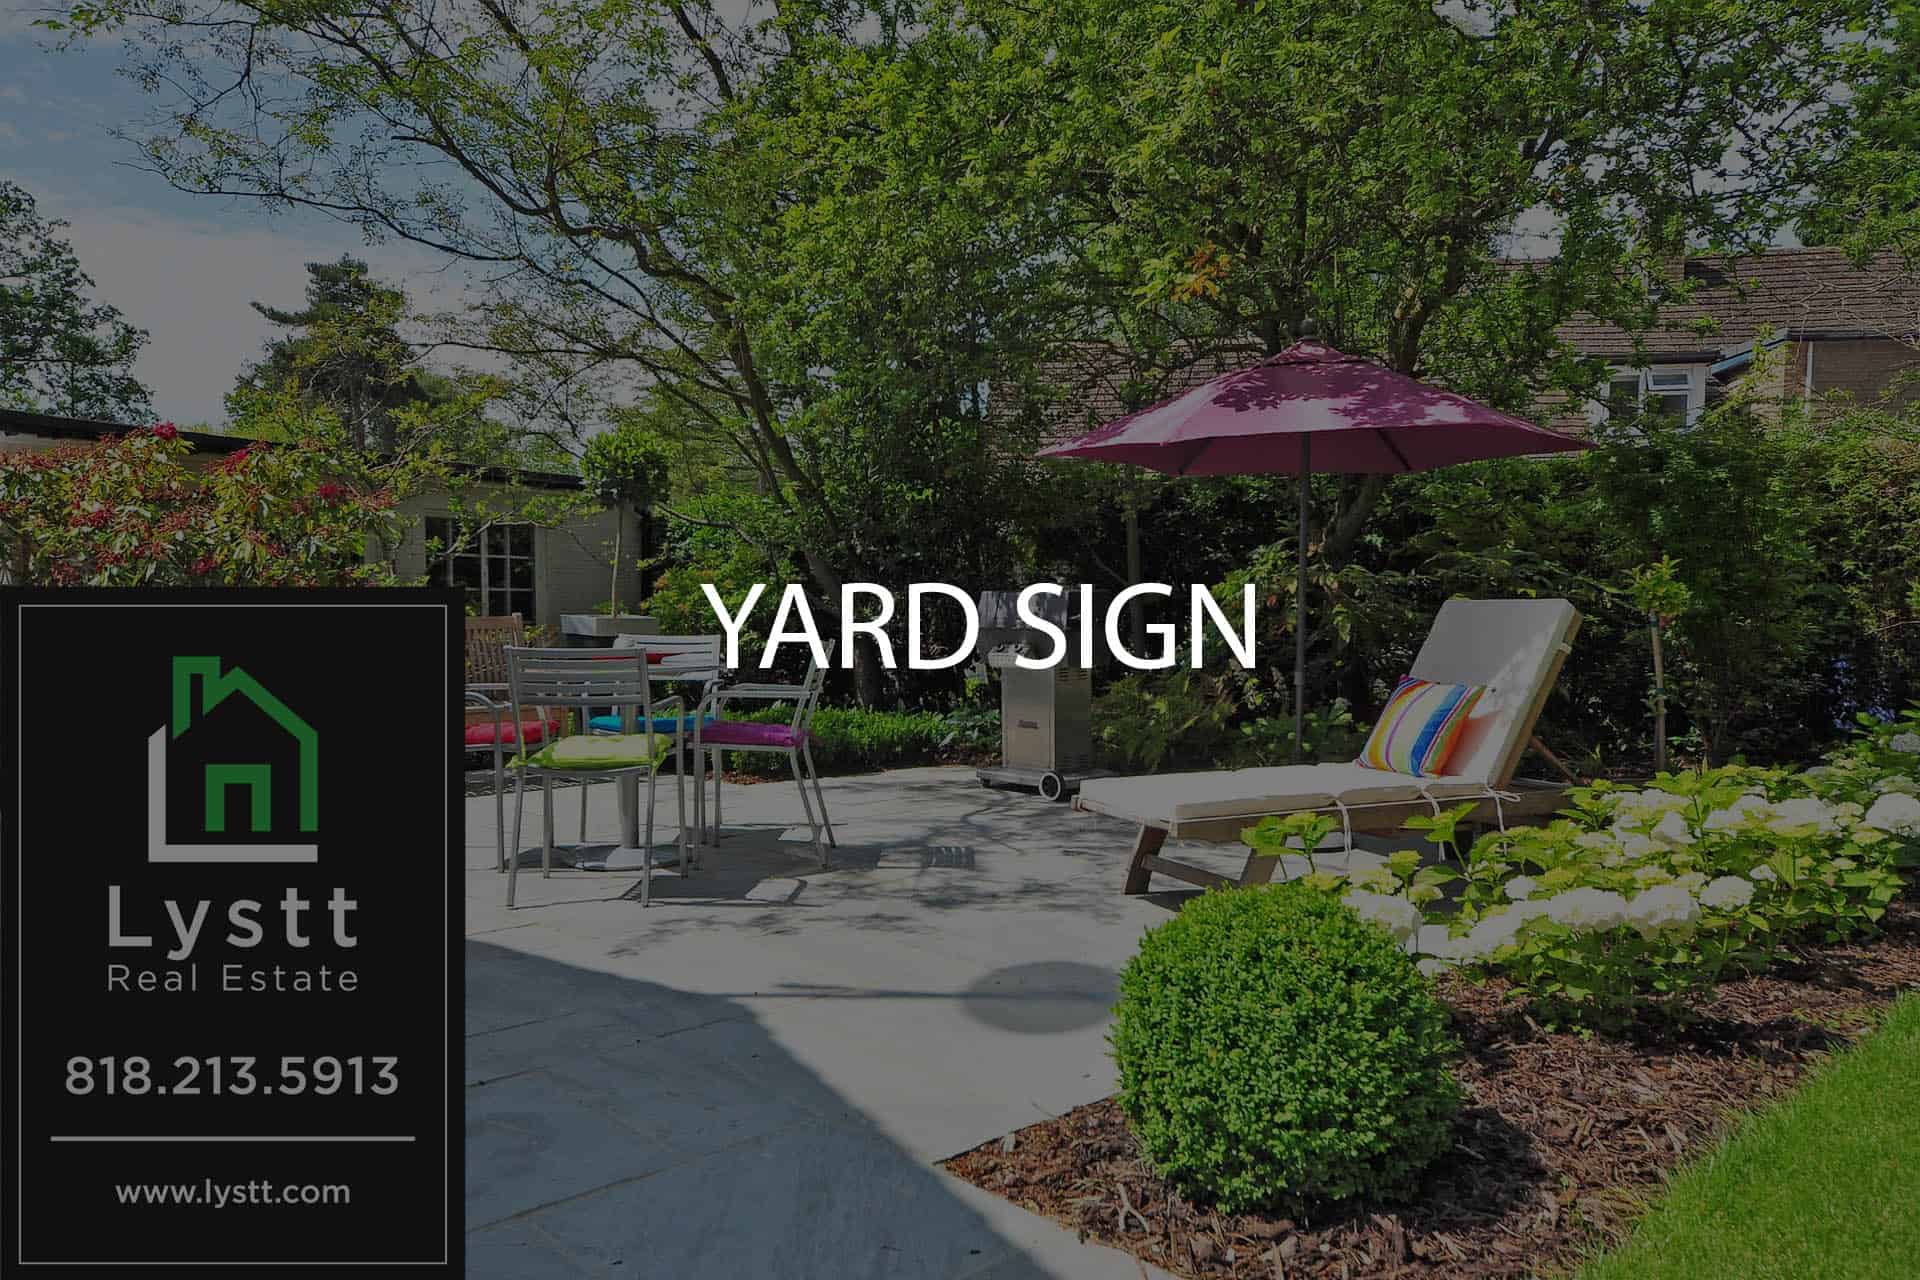 Lystt YARD SIGN